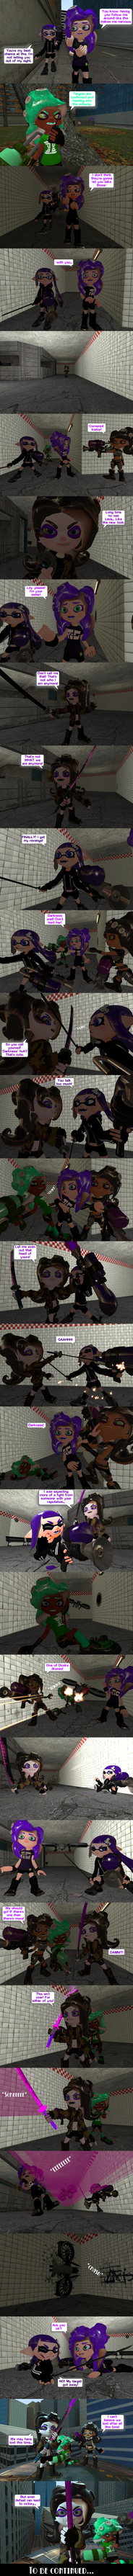 Chaos Aftermath part 5: Duel of Blades by DarkMario2